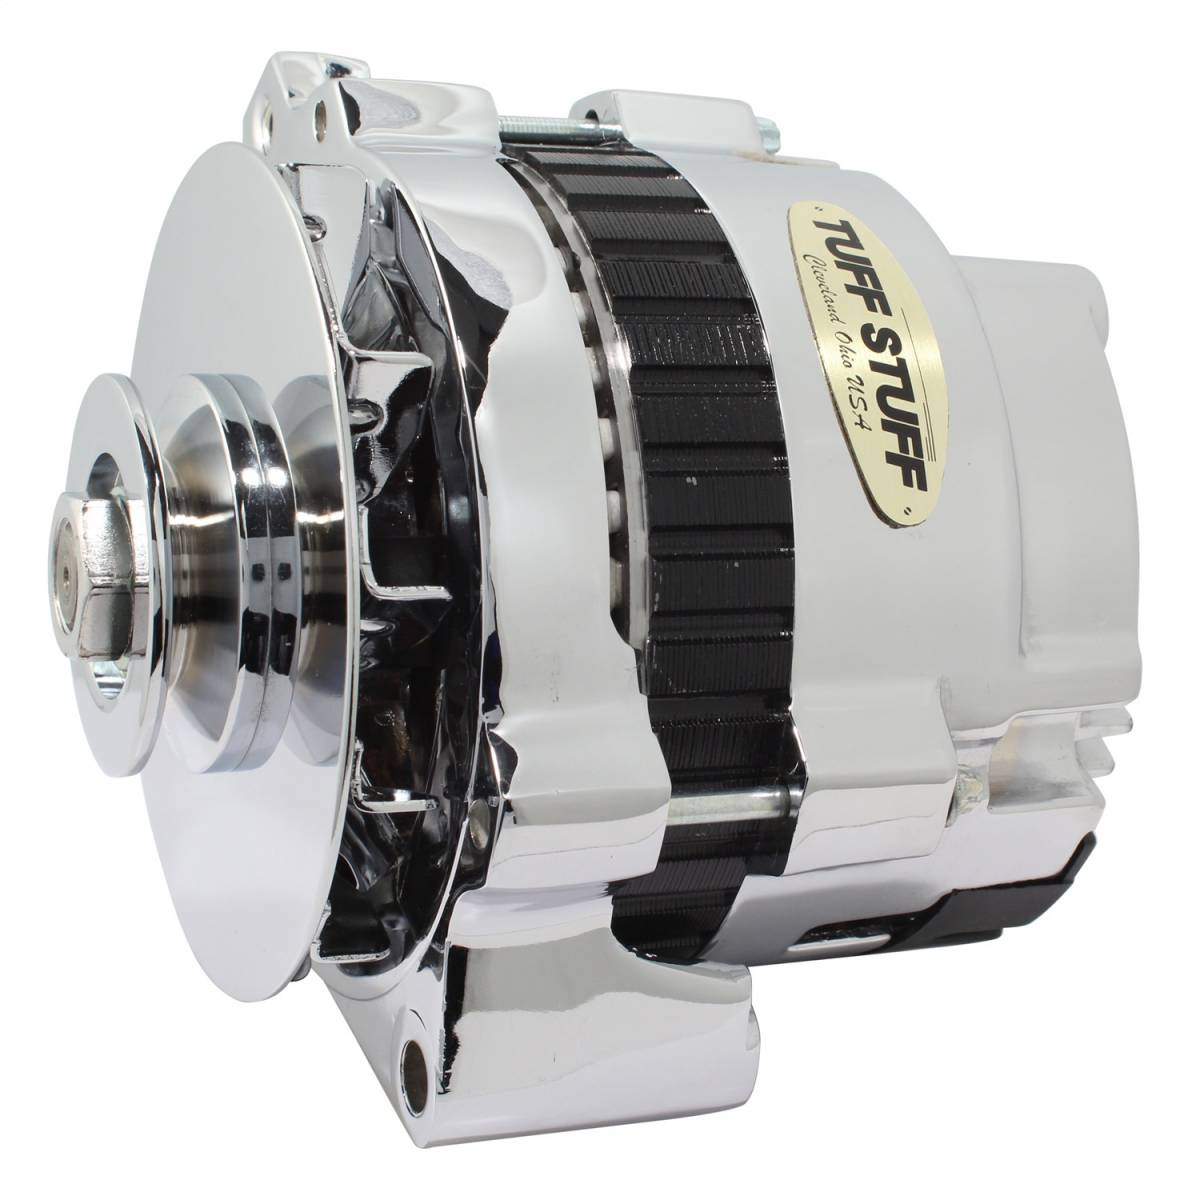 Tuff Stuff Performance - Alternator 105 AMP 1 Wire Or OEM V Groove Pulley 6.125 in. Bolt To Bolt Chrome 7866D